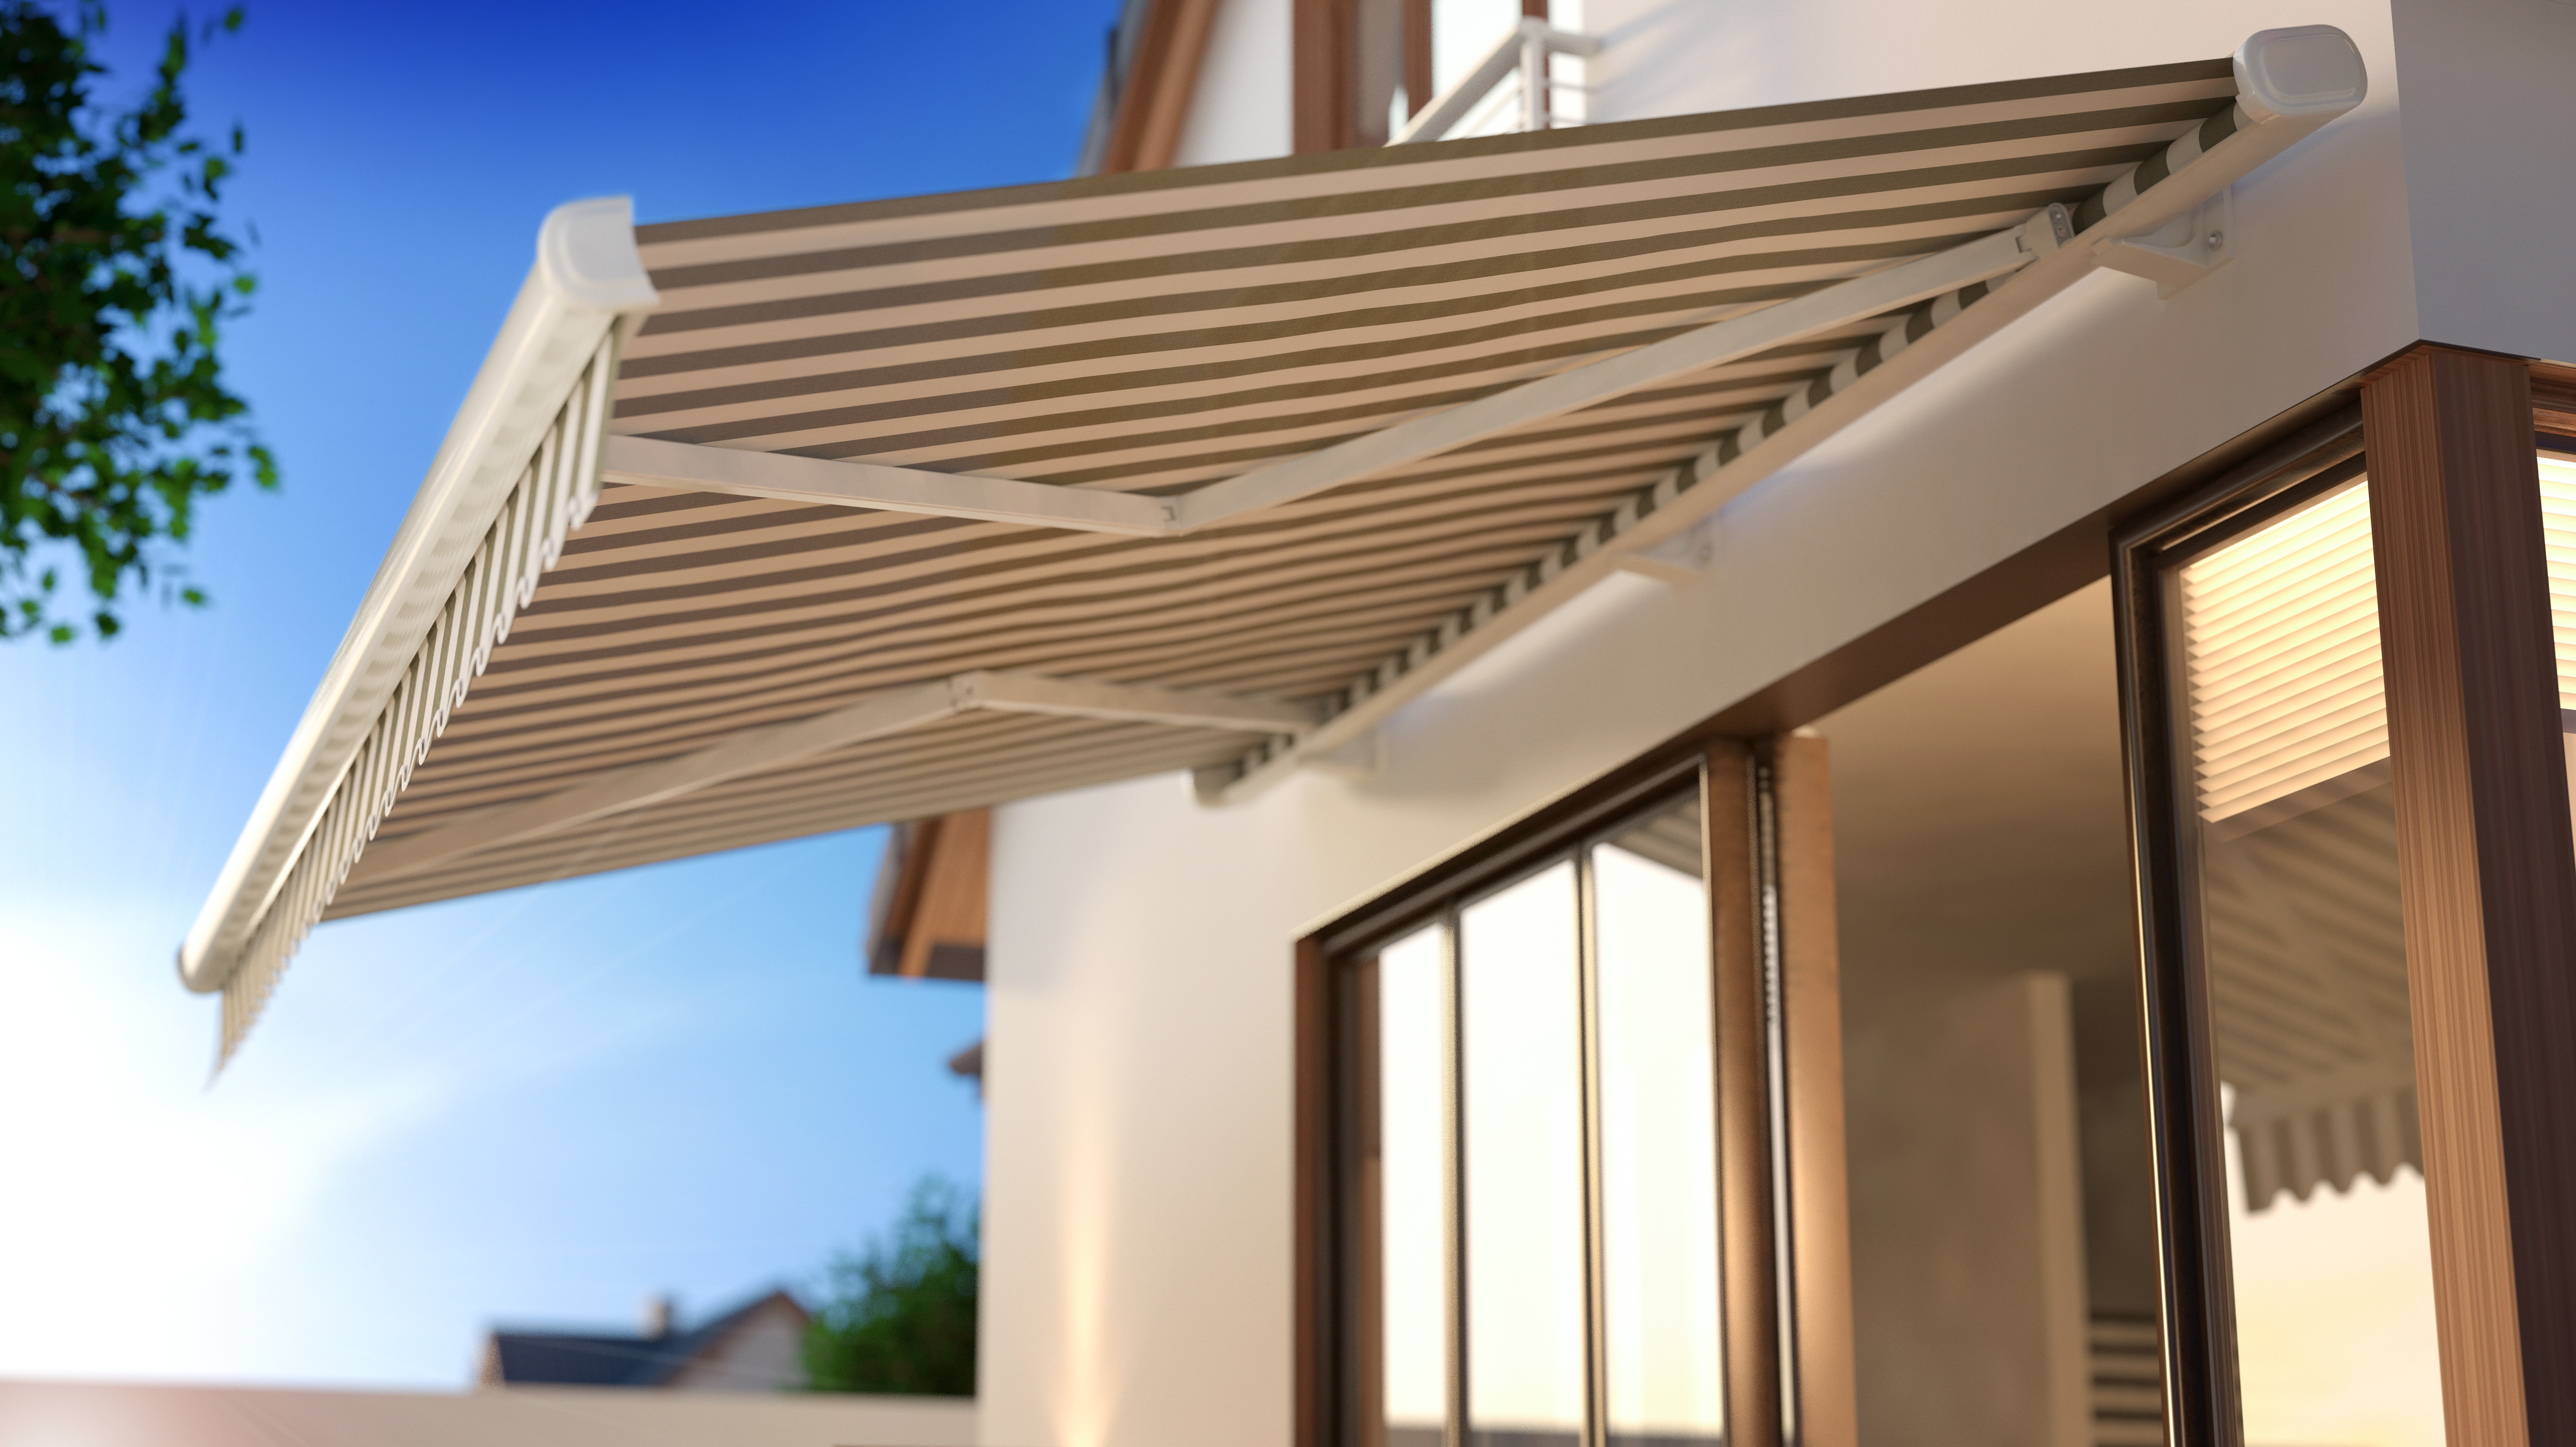 Awning Installation: Style and Types